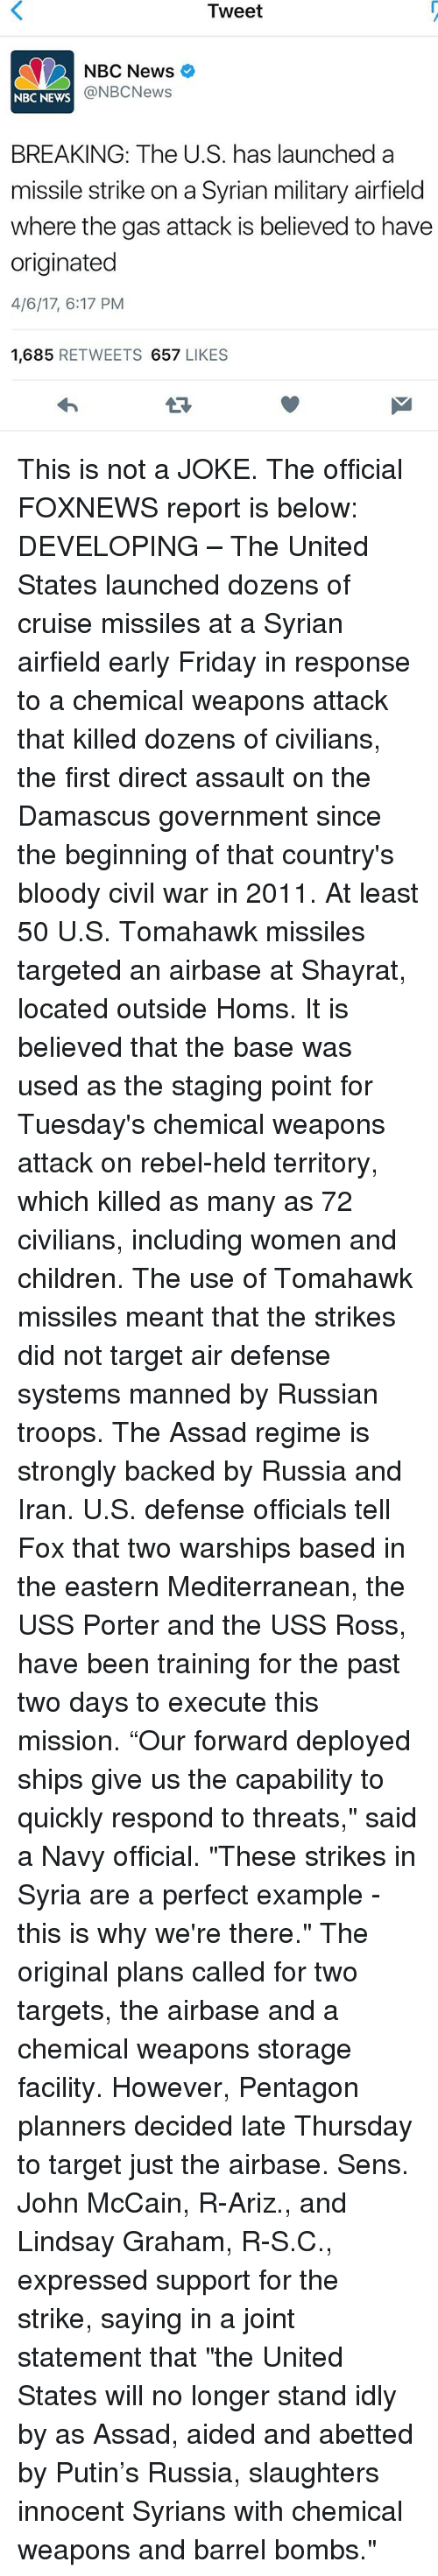 "Children, Friday, and Memes: Tweet  NBC News  @NBC News  NBC NEWS  BREAKING: The U.S. has launched a  missile strike on a Syrian military airfield  where the gas attack is believed to have  originated  4/6/17, 6:17 PM  1,685  RETWEETS  657  LIKES This is not a JOKE. The official FOXNEWS report is below: DEVELOPING – The United States launched dozens of cruise missiles at a Syrian airfield early Friday in response to a chemical weapons attack that killed dozens of civilians, the first direct assault on the Damascus government since the beginning of that country's bloody civil war in 2011. At least 50 U.S. Tomahawk missiles targeted an airbase at Shayrat, located outside Homs. It is believed that the base was used as the staging point for Tuesday's chemical weapons attack on rebel-held territory, which killed as many as 72 civilians, including women and children. The use of Tomahawk missiles meant that the strikes did not target air defense systems manned by Russian troops. The Assad regime is strongly backed by Russia and Iran. U.S. defense officials tell Fox that two warships based in the eastern Mediterranean, the USS Porter and the USS Ross, have been training for the past two days to execute this mission. ""Our forward deployed ships give us the capability to quickly respond to threats,"" said a Navy official. ""These strikes in Syria are a perfect example - this is why we're there."" The original plans called for two targets, the airbase and a chemical weapons storage facility. However, Pentagon planners decided late Thursday to target just the airbase. Sens. John McCain, R-Ariz., and Lindsay Graham, R-S.C., expressed support for the strike, saying in a joint statement that ""the United States will no longer stand idly by as Assad, aided and abetted by Putin's Russia, slaughters innocent Syrians with chemical weapons and barrel bombs."""